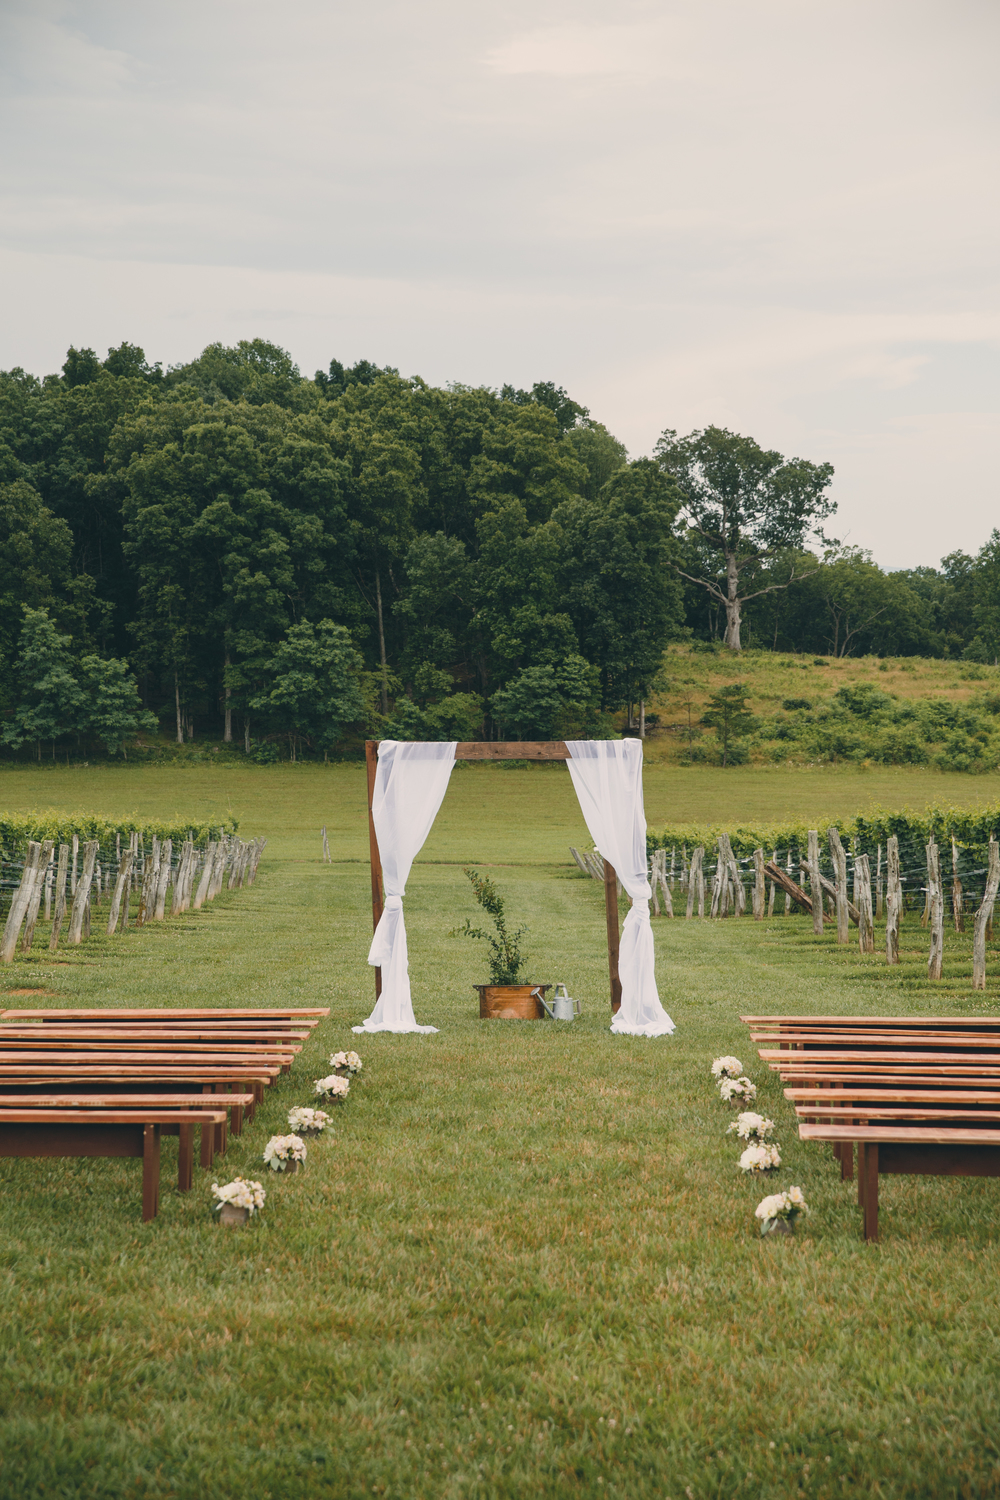 vamountainvineyards-weddings-weddingphotographer-virginia-patcoriphotography(264of800).jpg